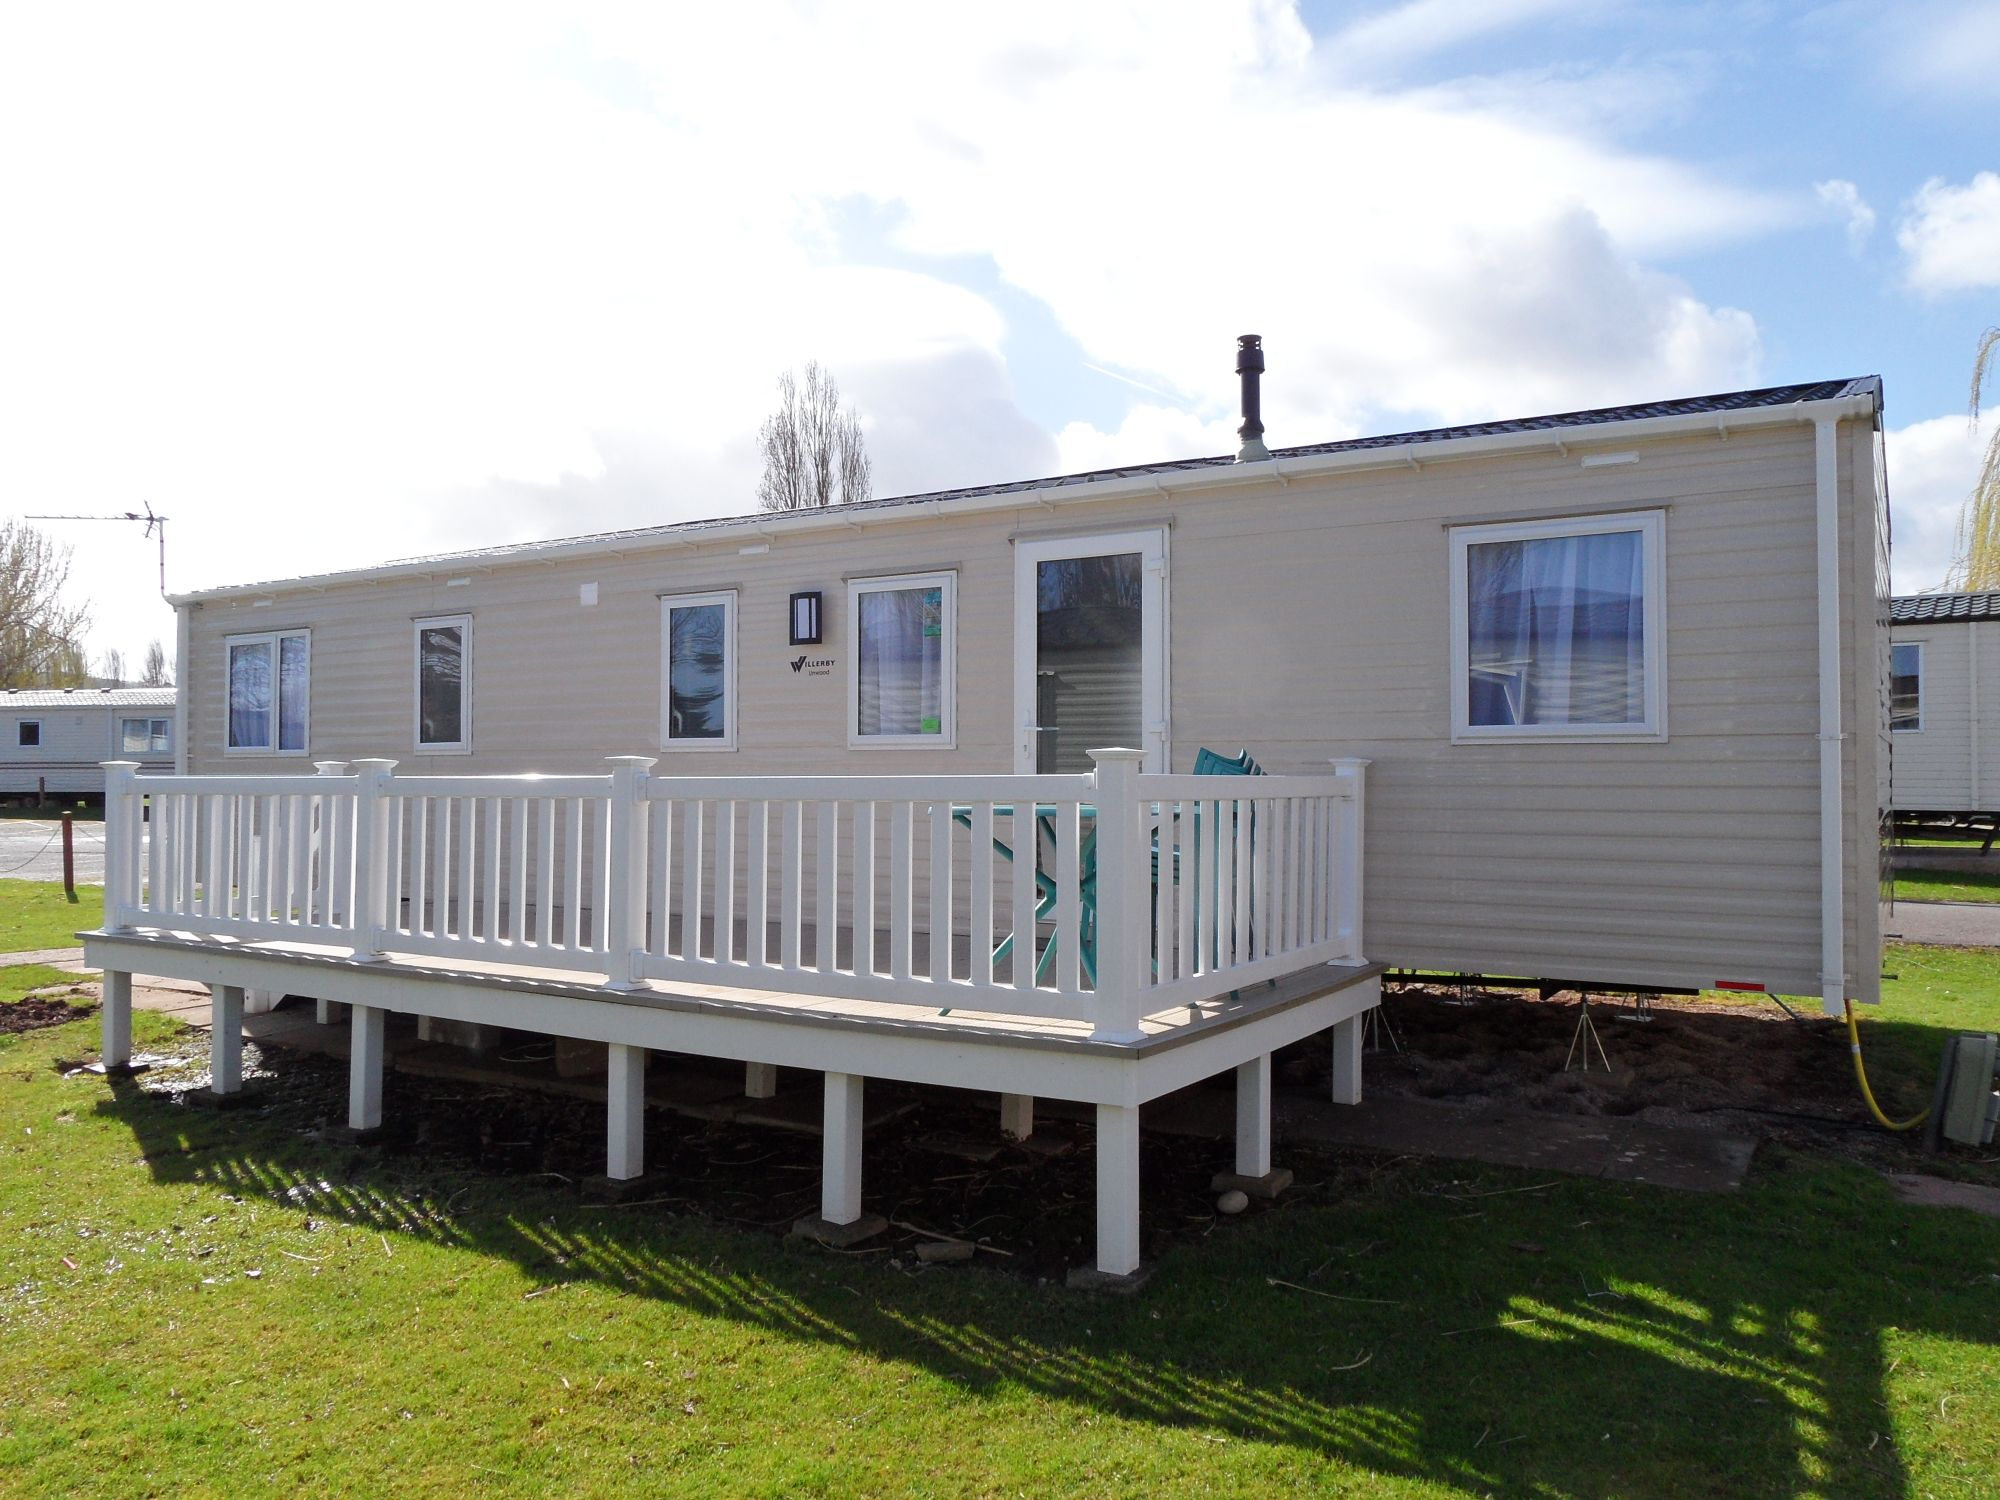 4 Bedroom, 10 berth Caravan Butlins Minehead